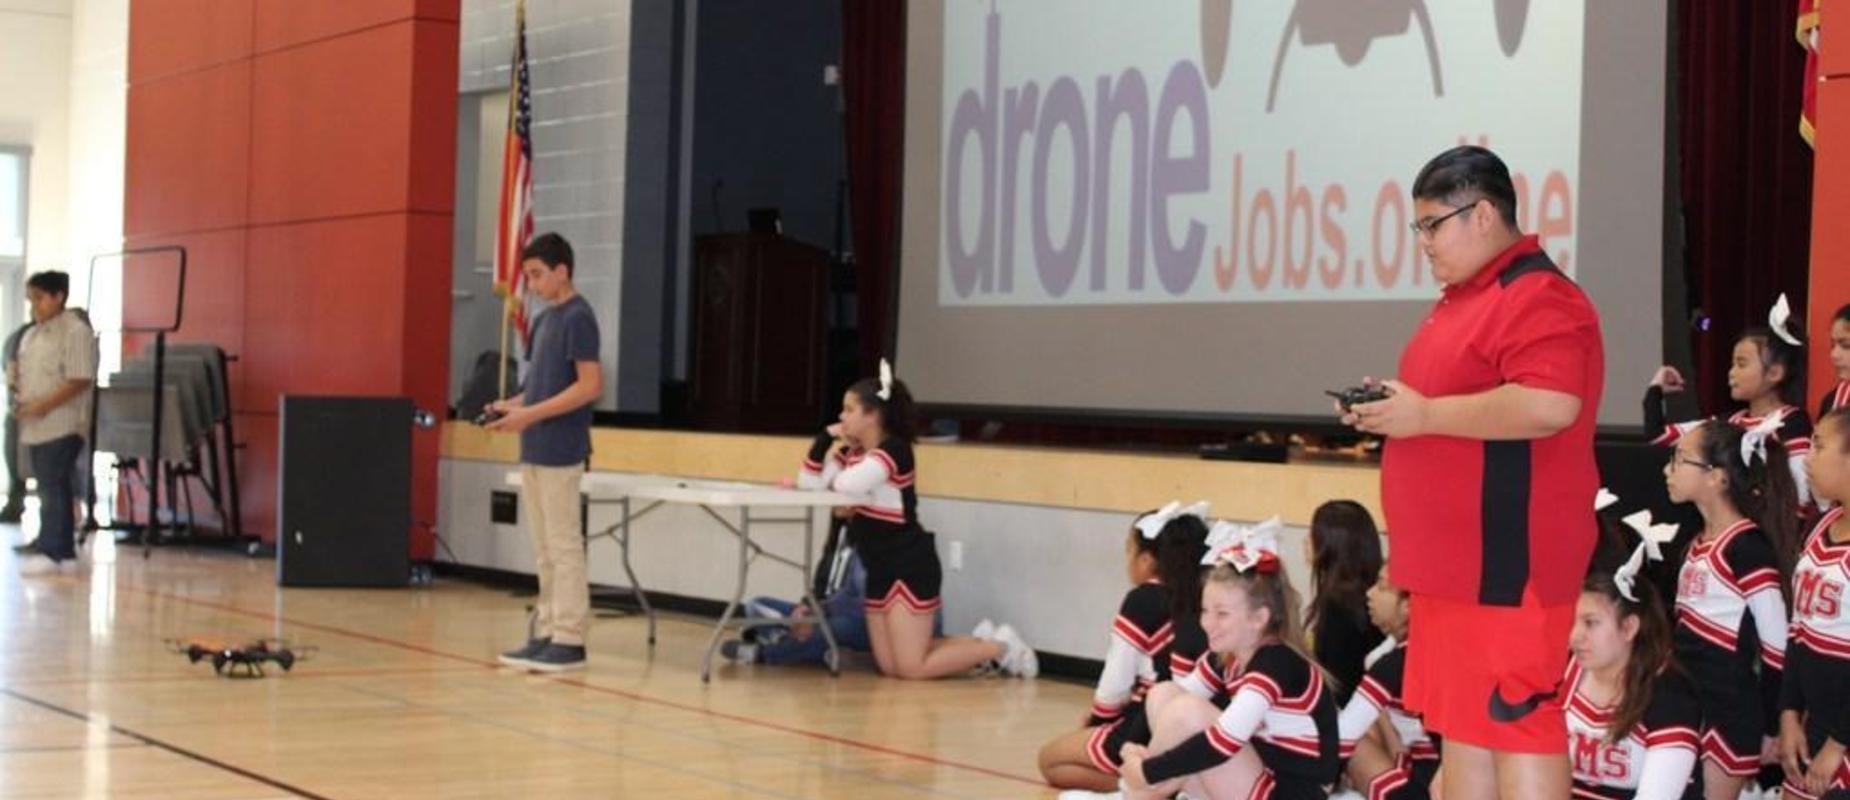 Students are learning Drone Piloting as a career.